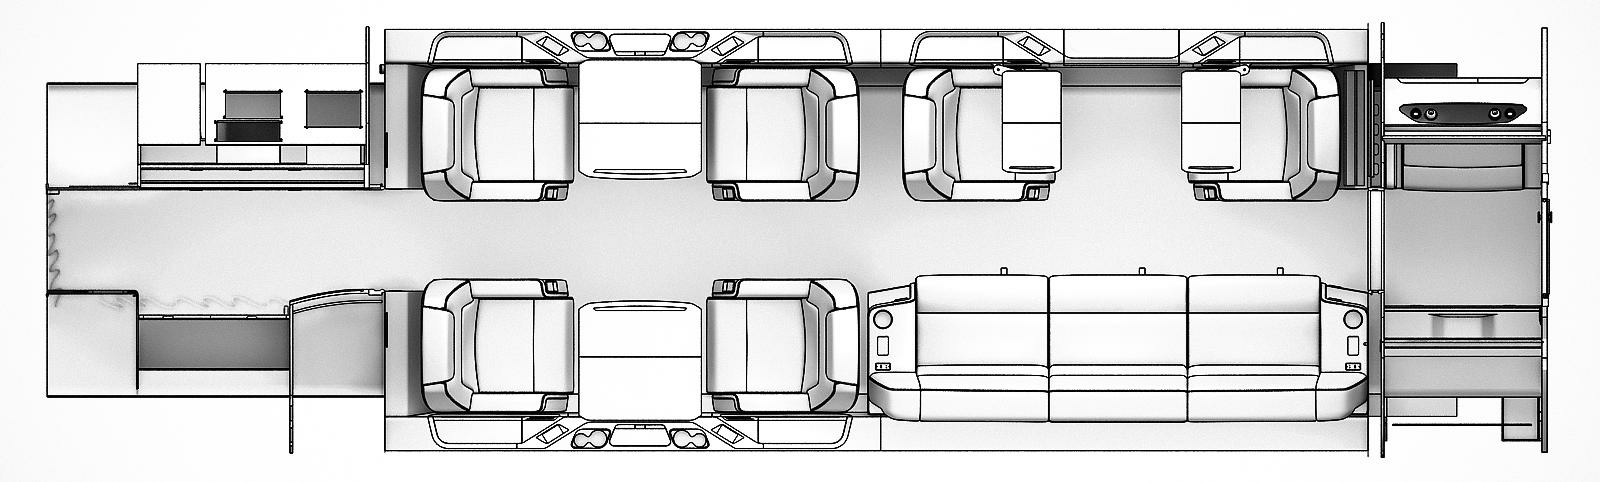 Floor plan of Challenger 350